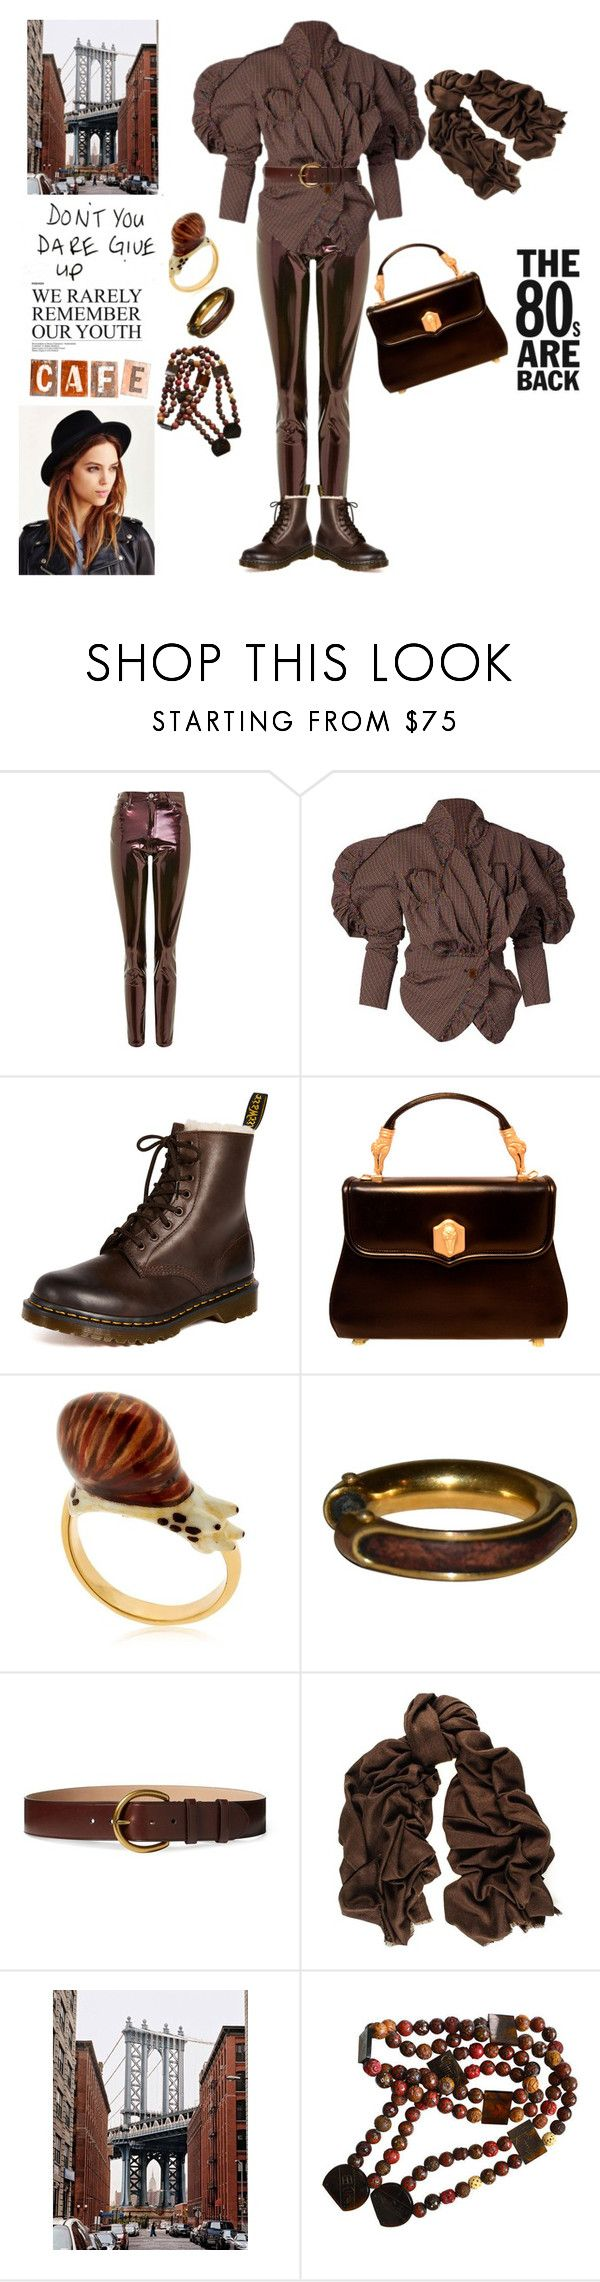 """""""The 80s are Back"""" by taci42 ❤ liked on Polyvore featuring Topshop, Vivienne Westwood, Dr. Martens, Kieselstein-Cord, Nach, Hermès, Polo Ralph Lauren, Black, brown and jacket"""